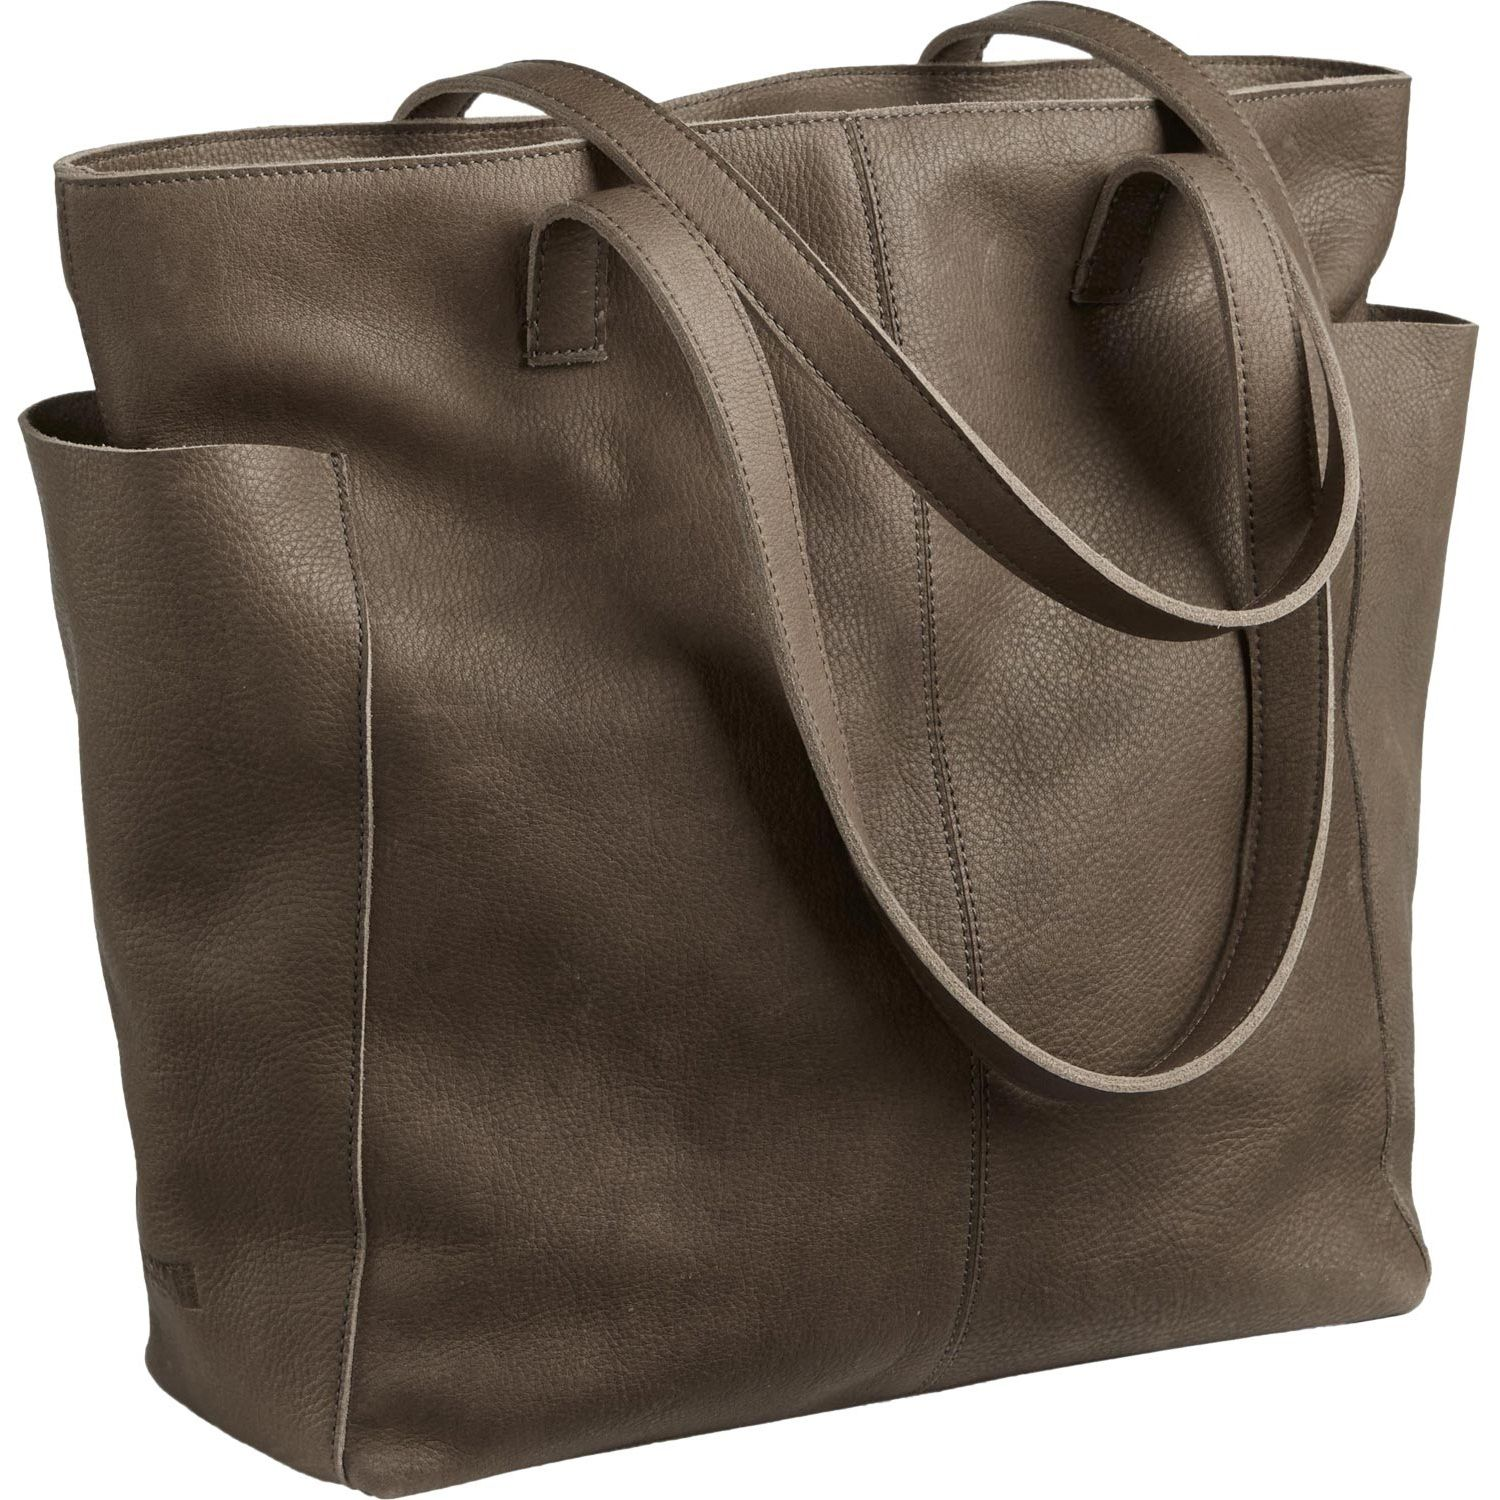 Amazing Women Leather Tote Bag Brown